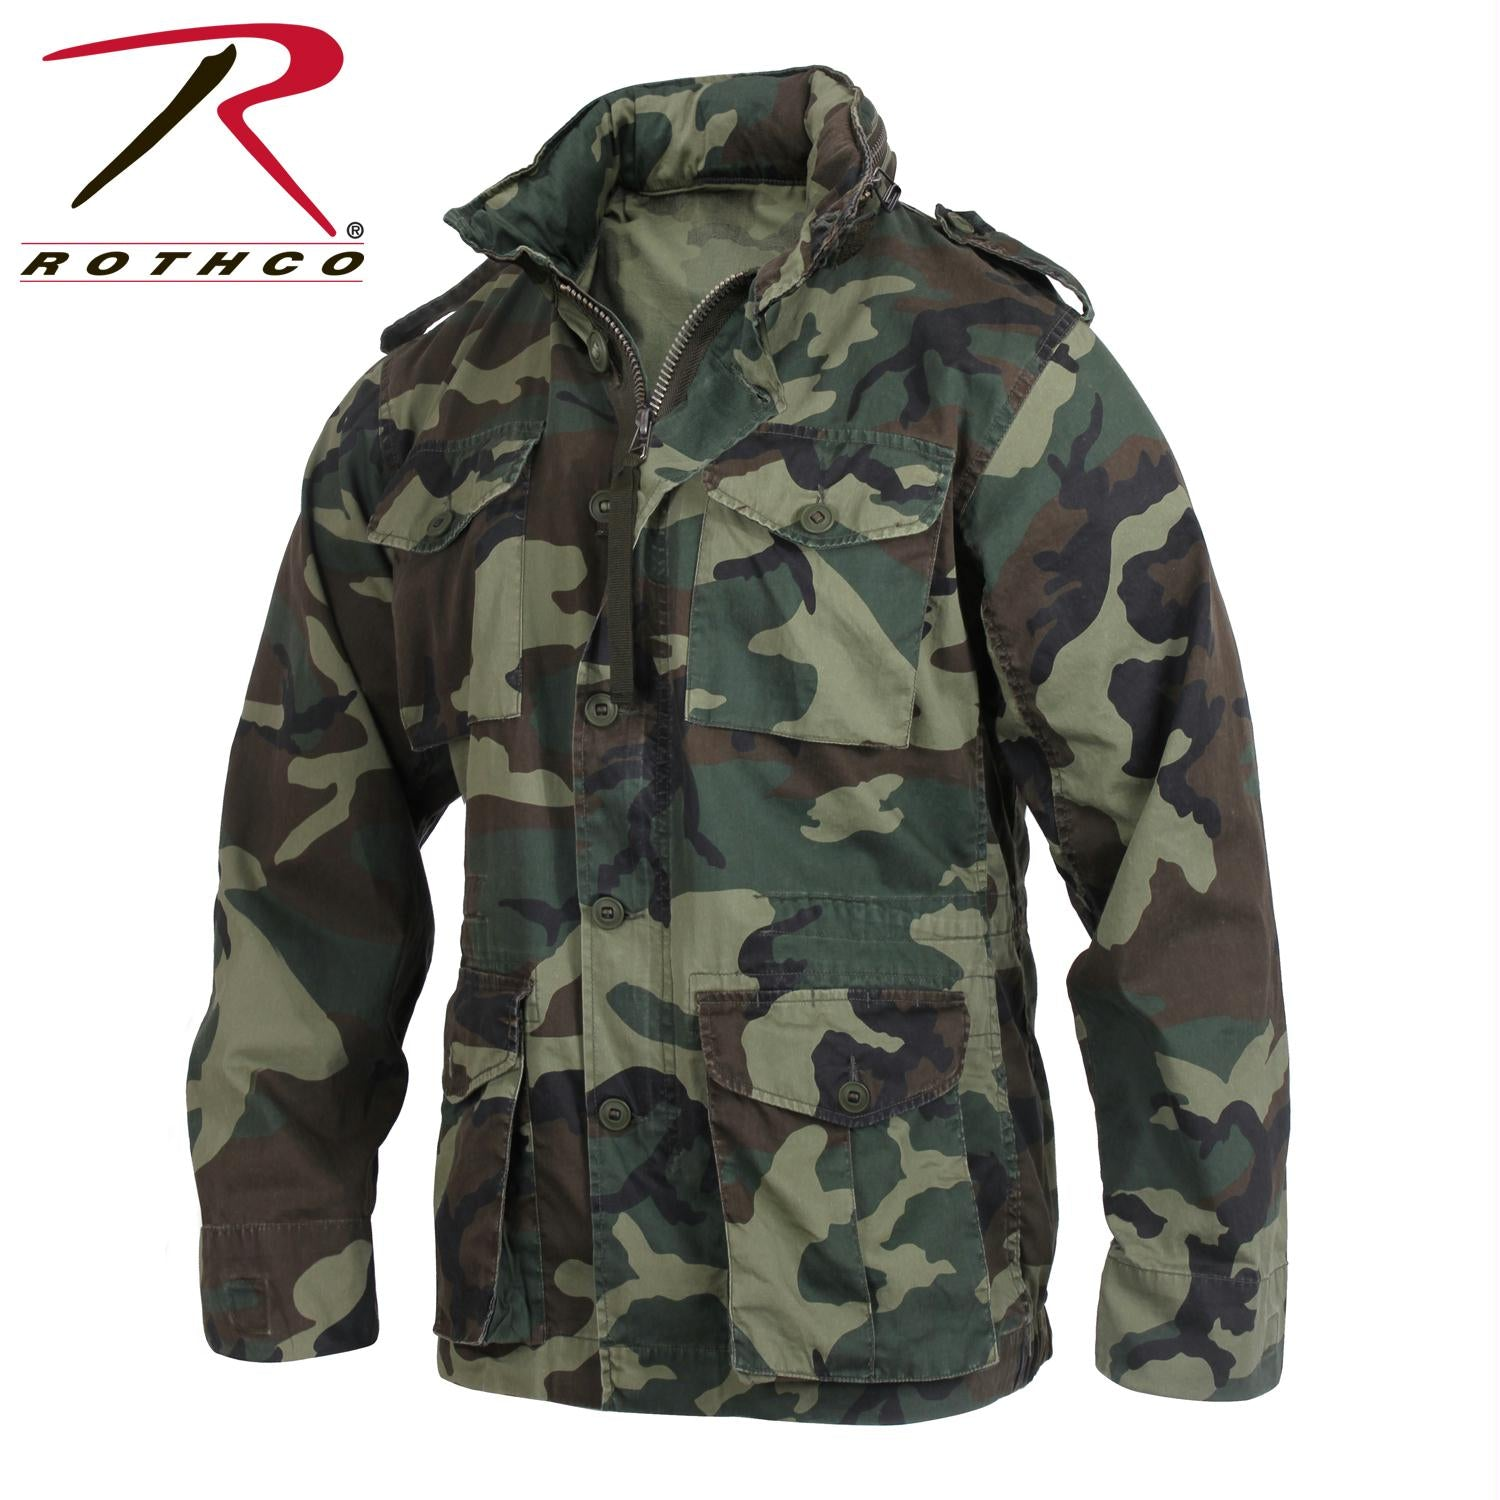 Rothco Vintage Lightweight M-65 Field Jacket - Woodland Camo / 2XL